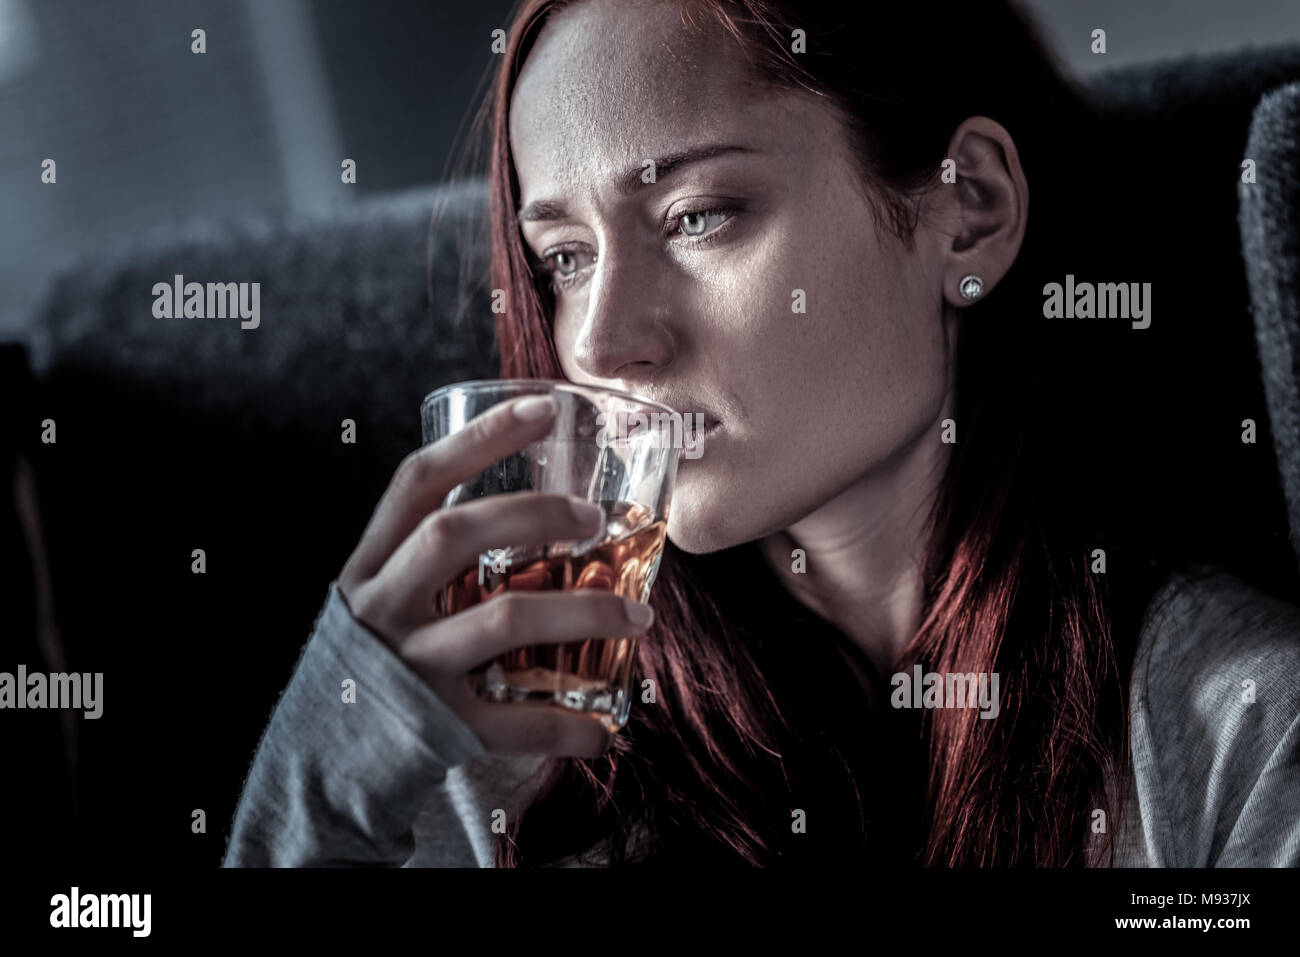 Frustrated unhappy woman looking aside and drinking. - Stock Image